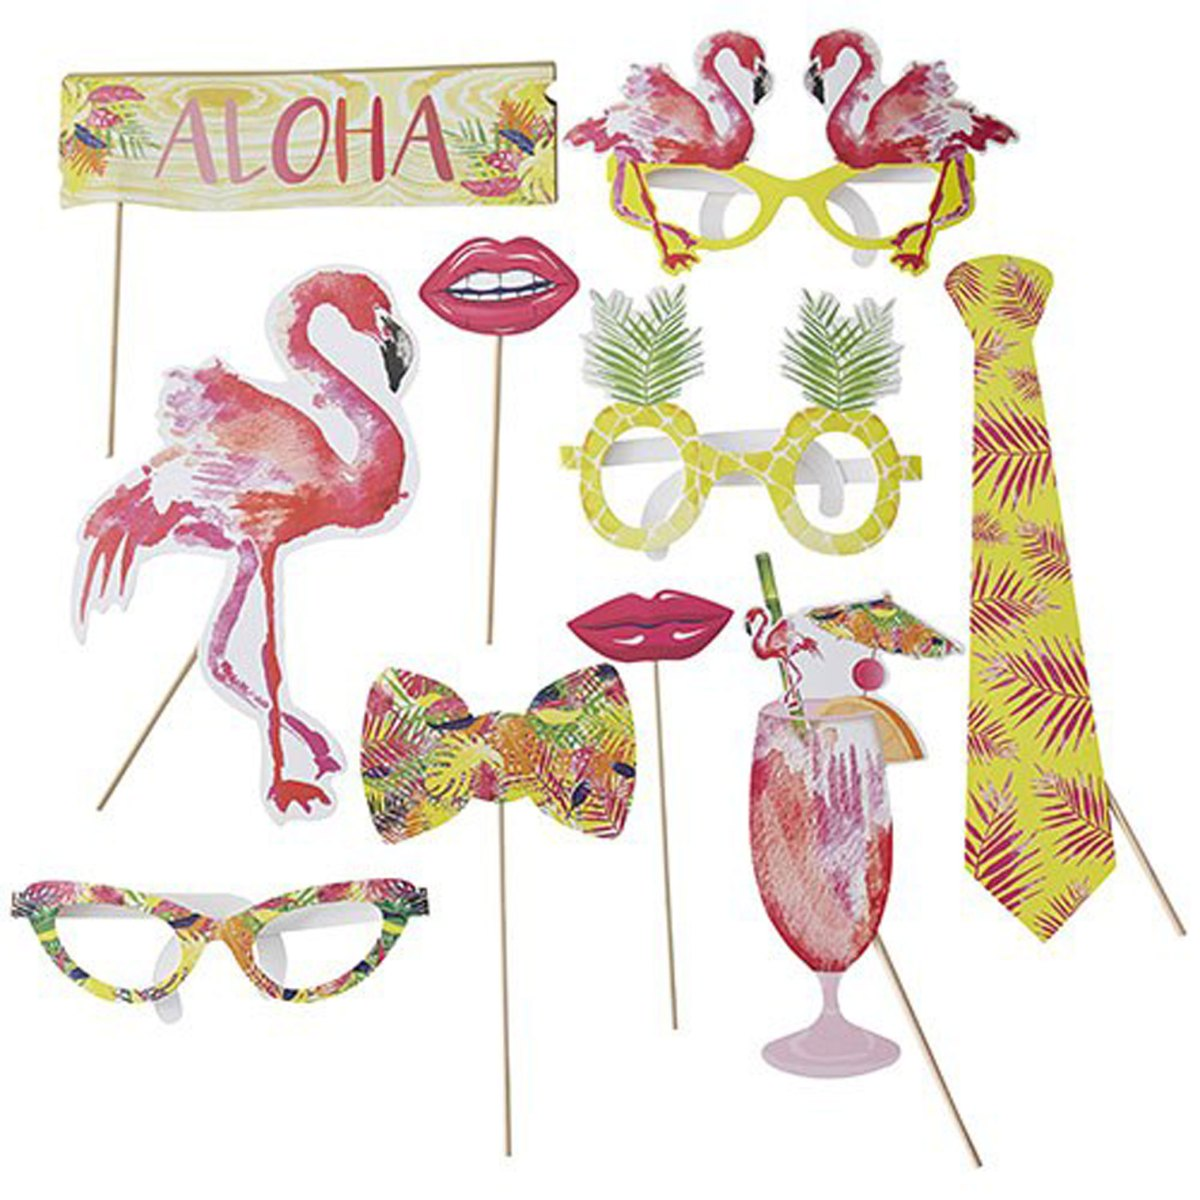 Flamingo Fun Party Photo Booth Props Kit with pineapple, cocktail, party flamingo and glsses